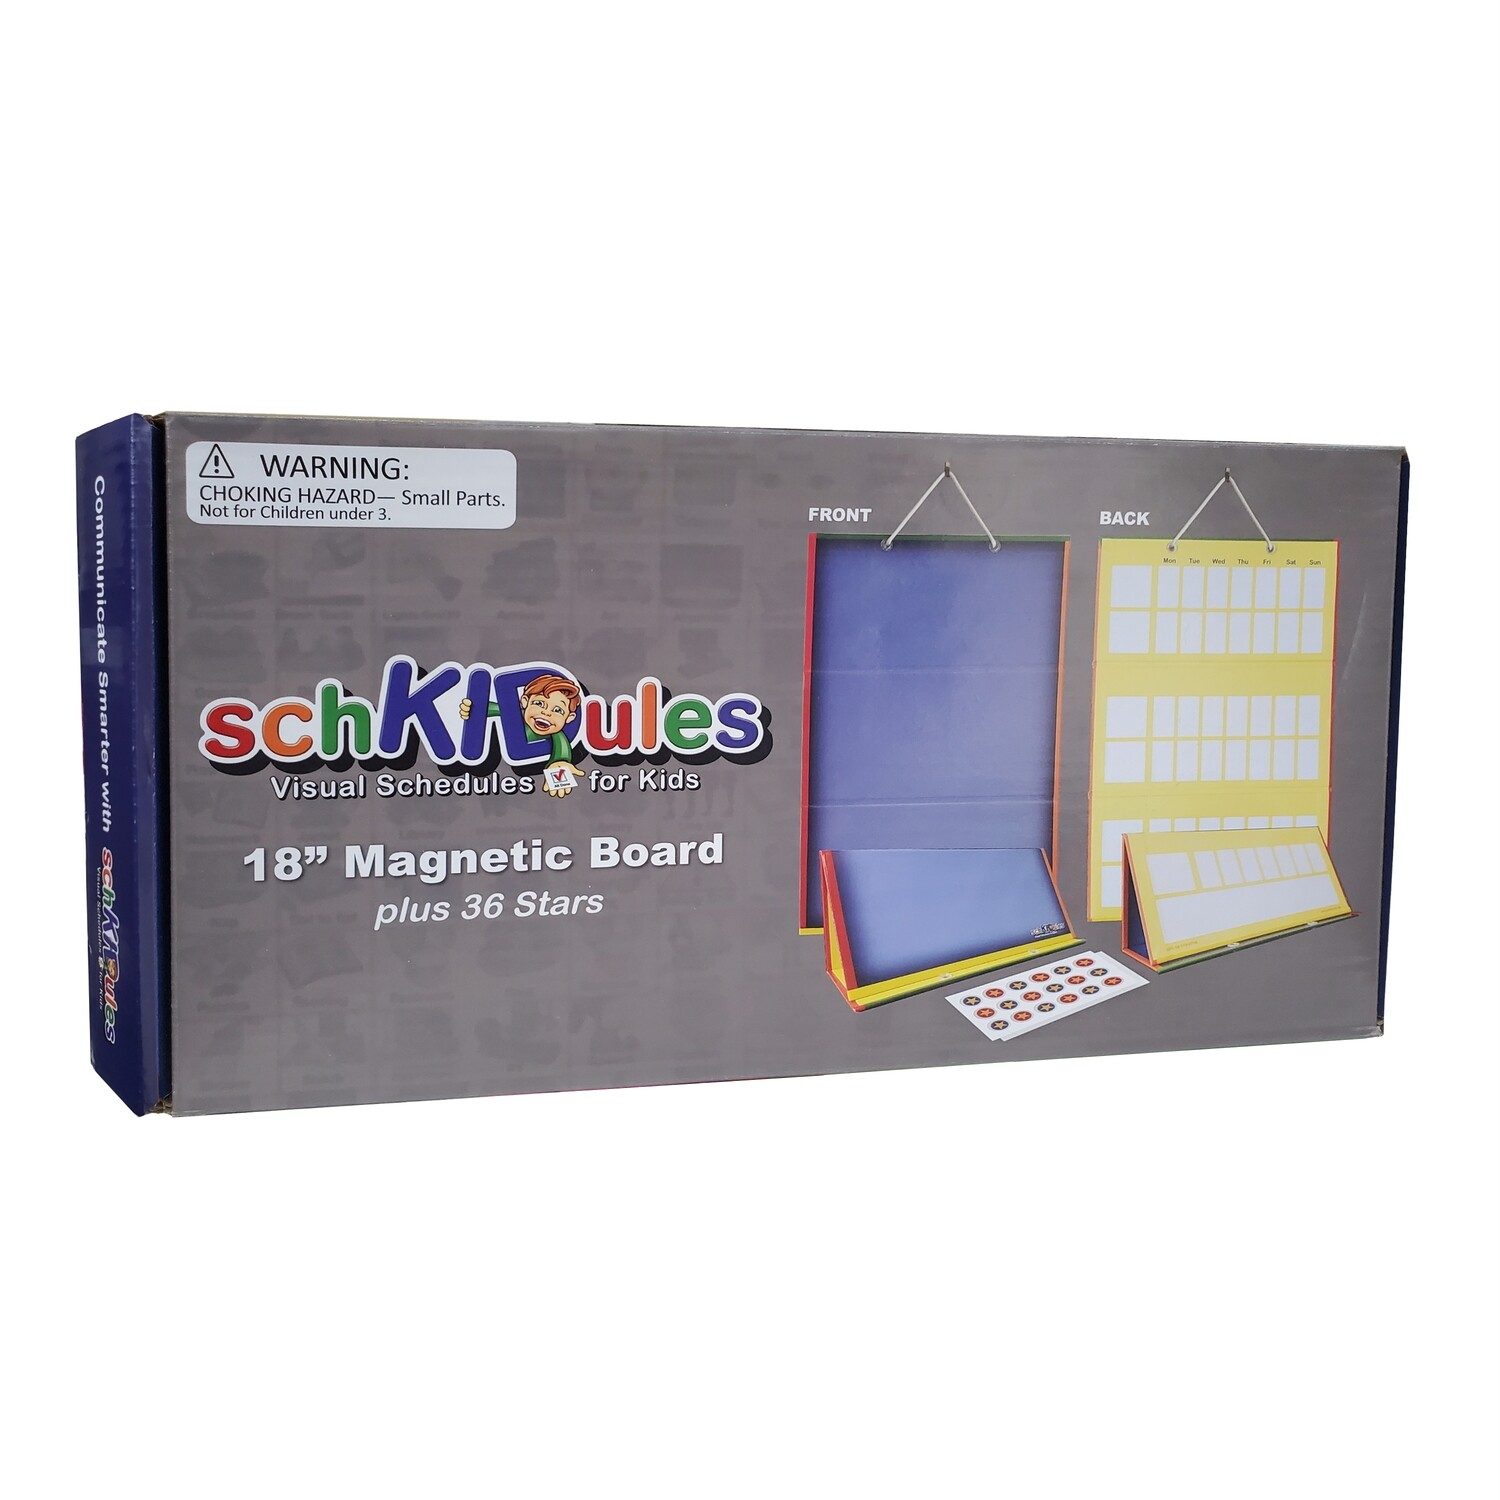 "SchKIDules 2-Sided 18"" Magnetic Board"